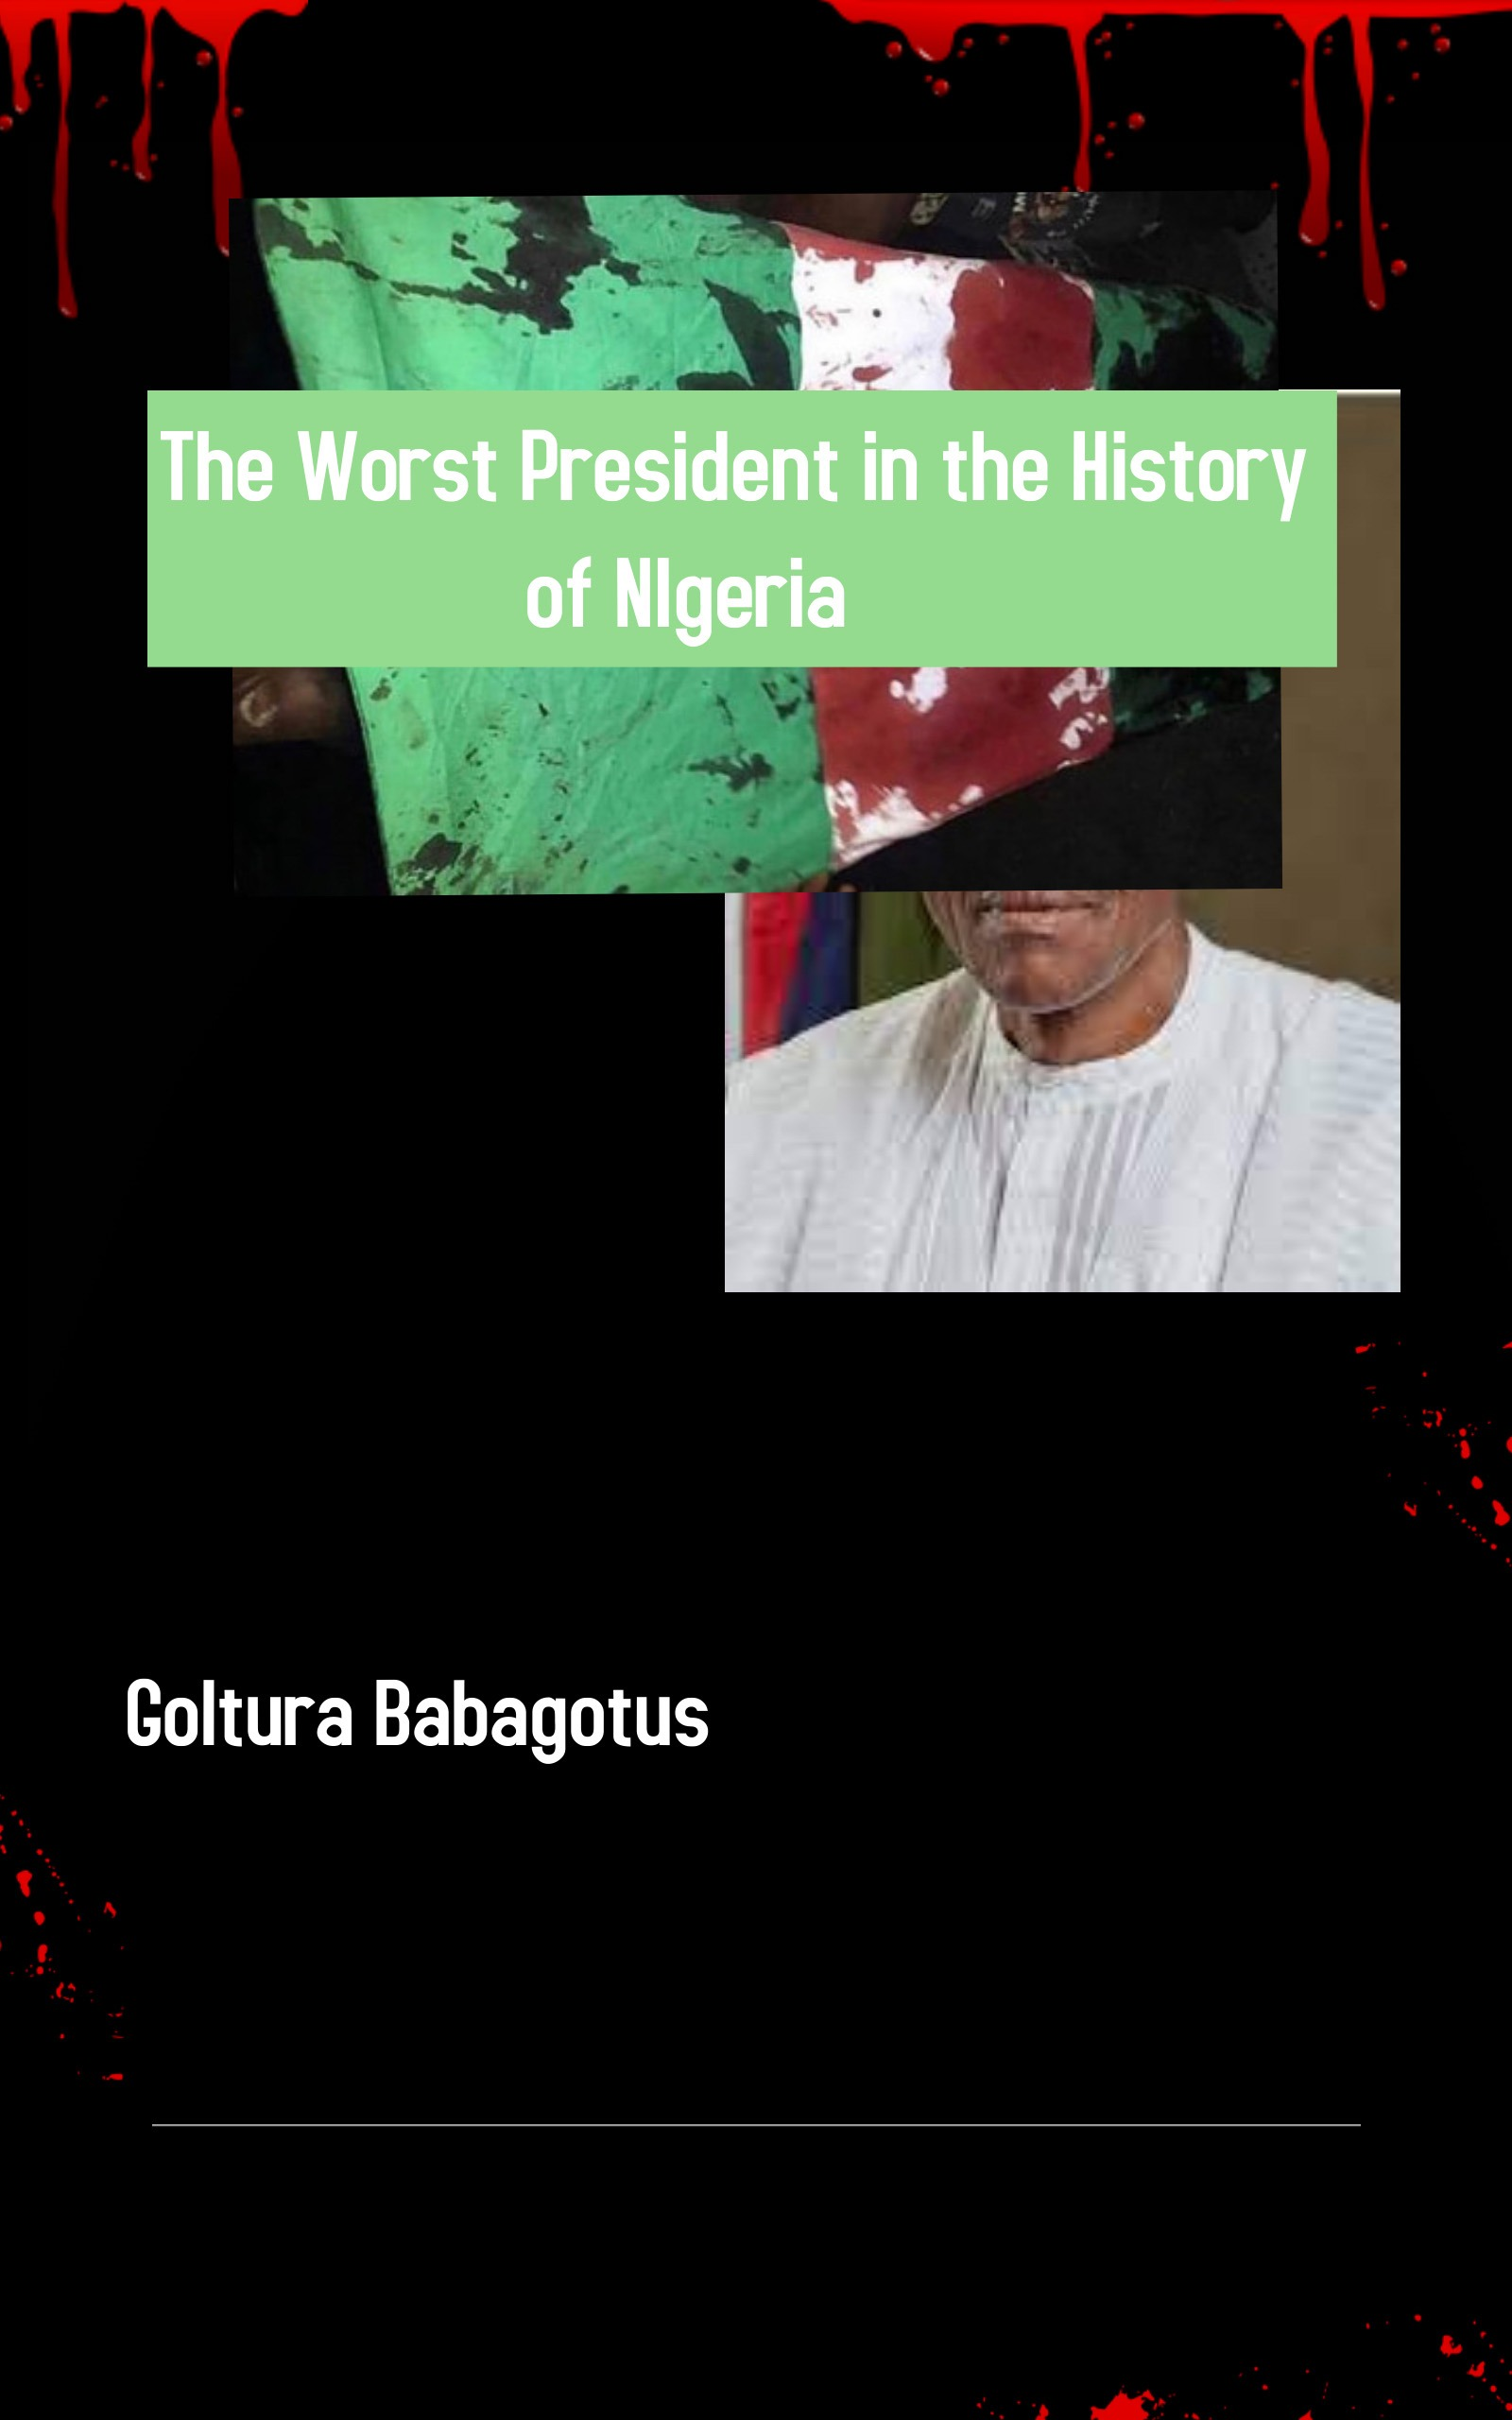 The Worst President in the History of Nigeria